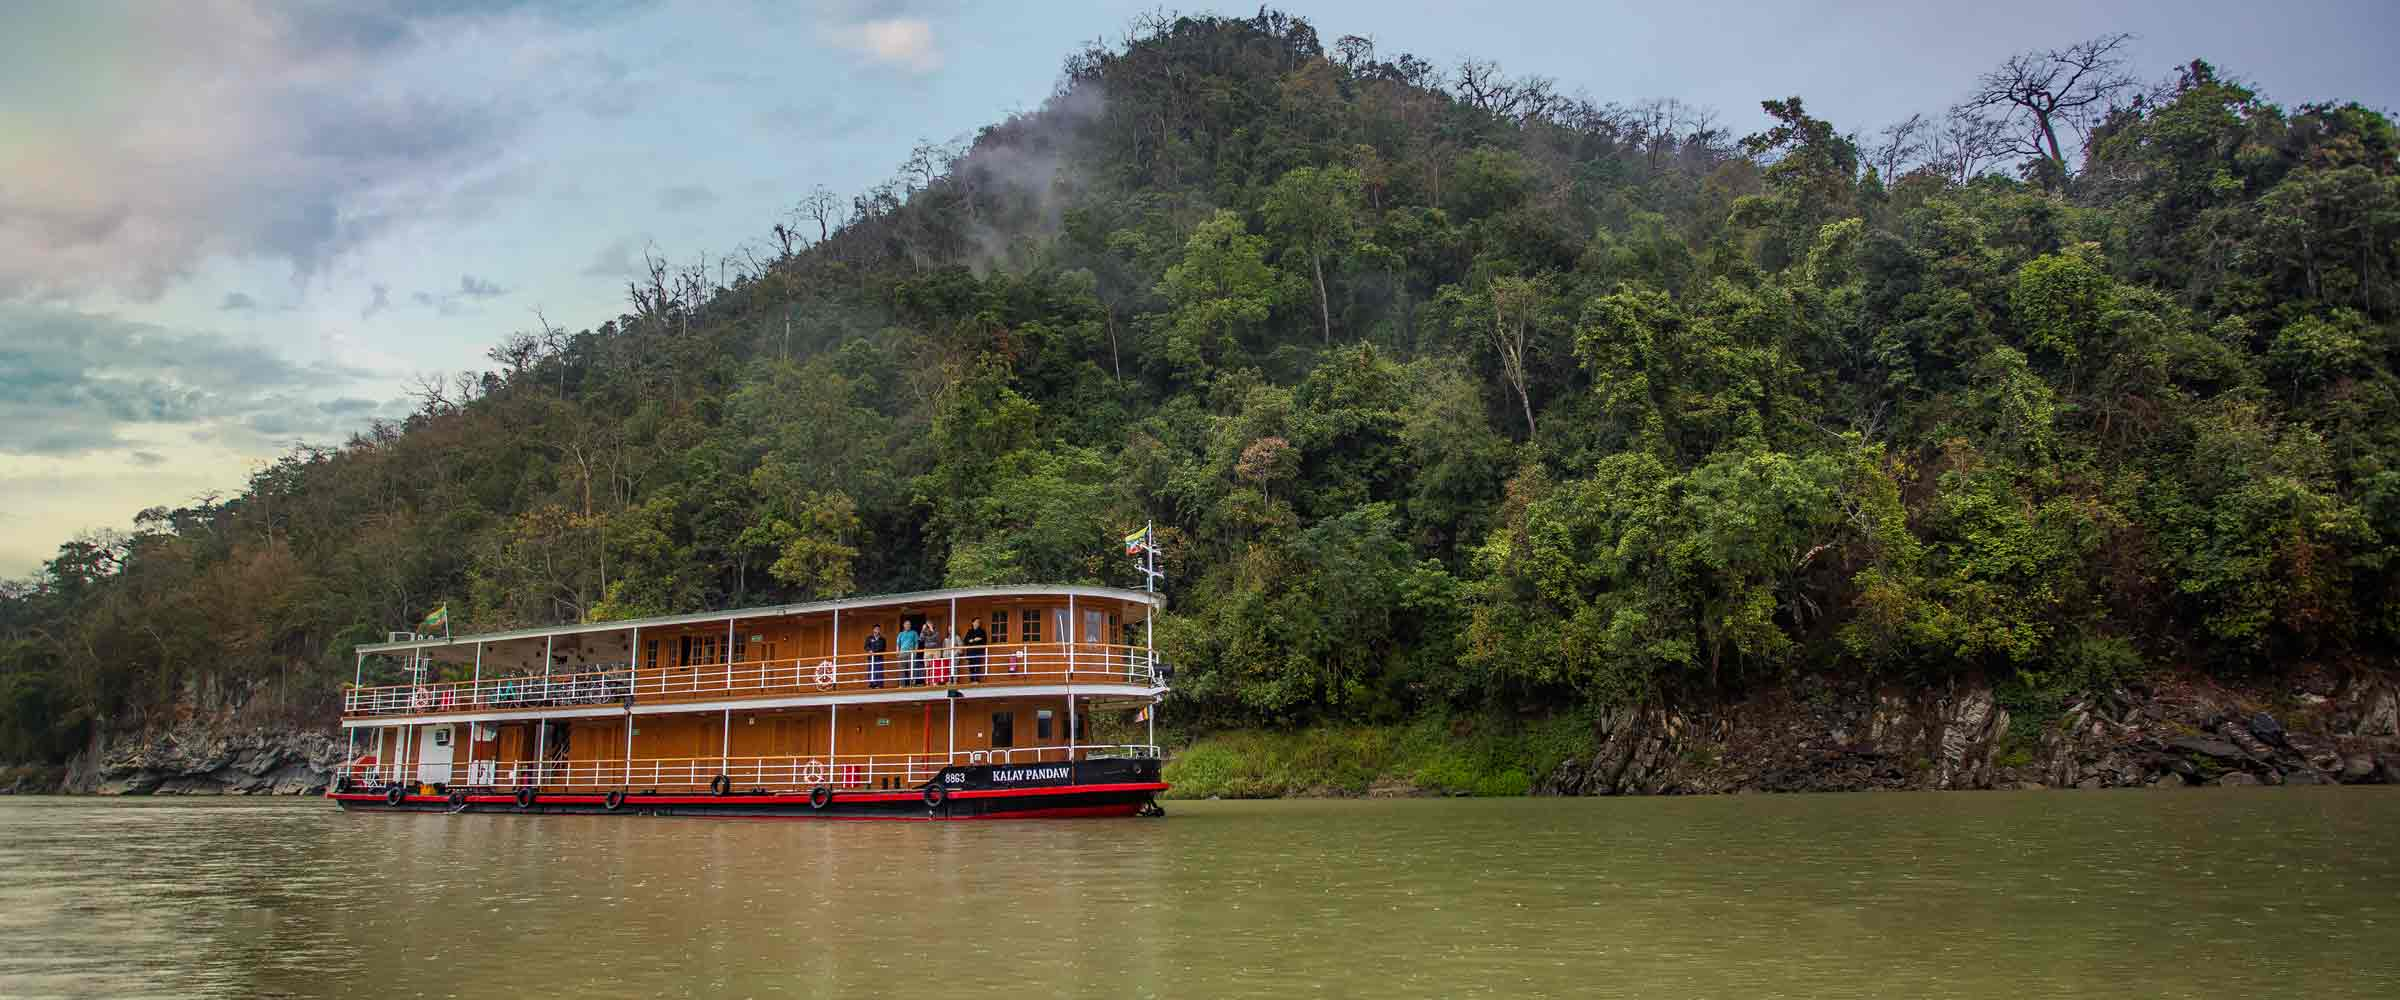 Pandaw is the Leading River Cruise company in Asia